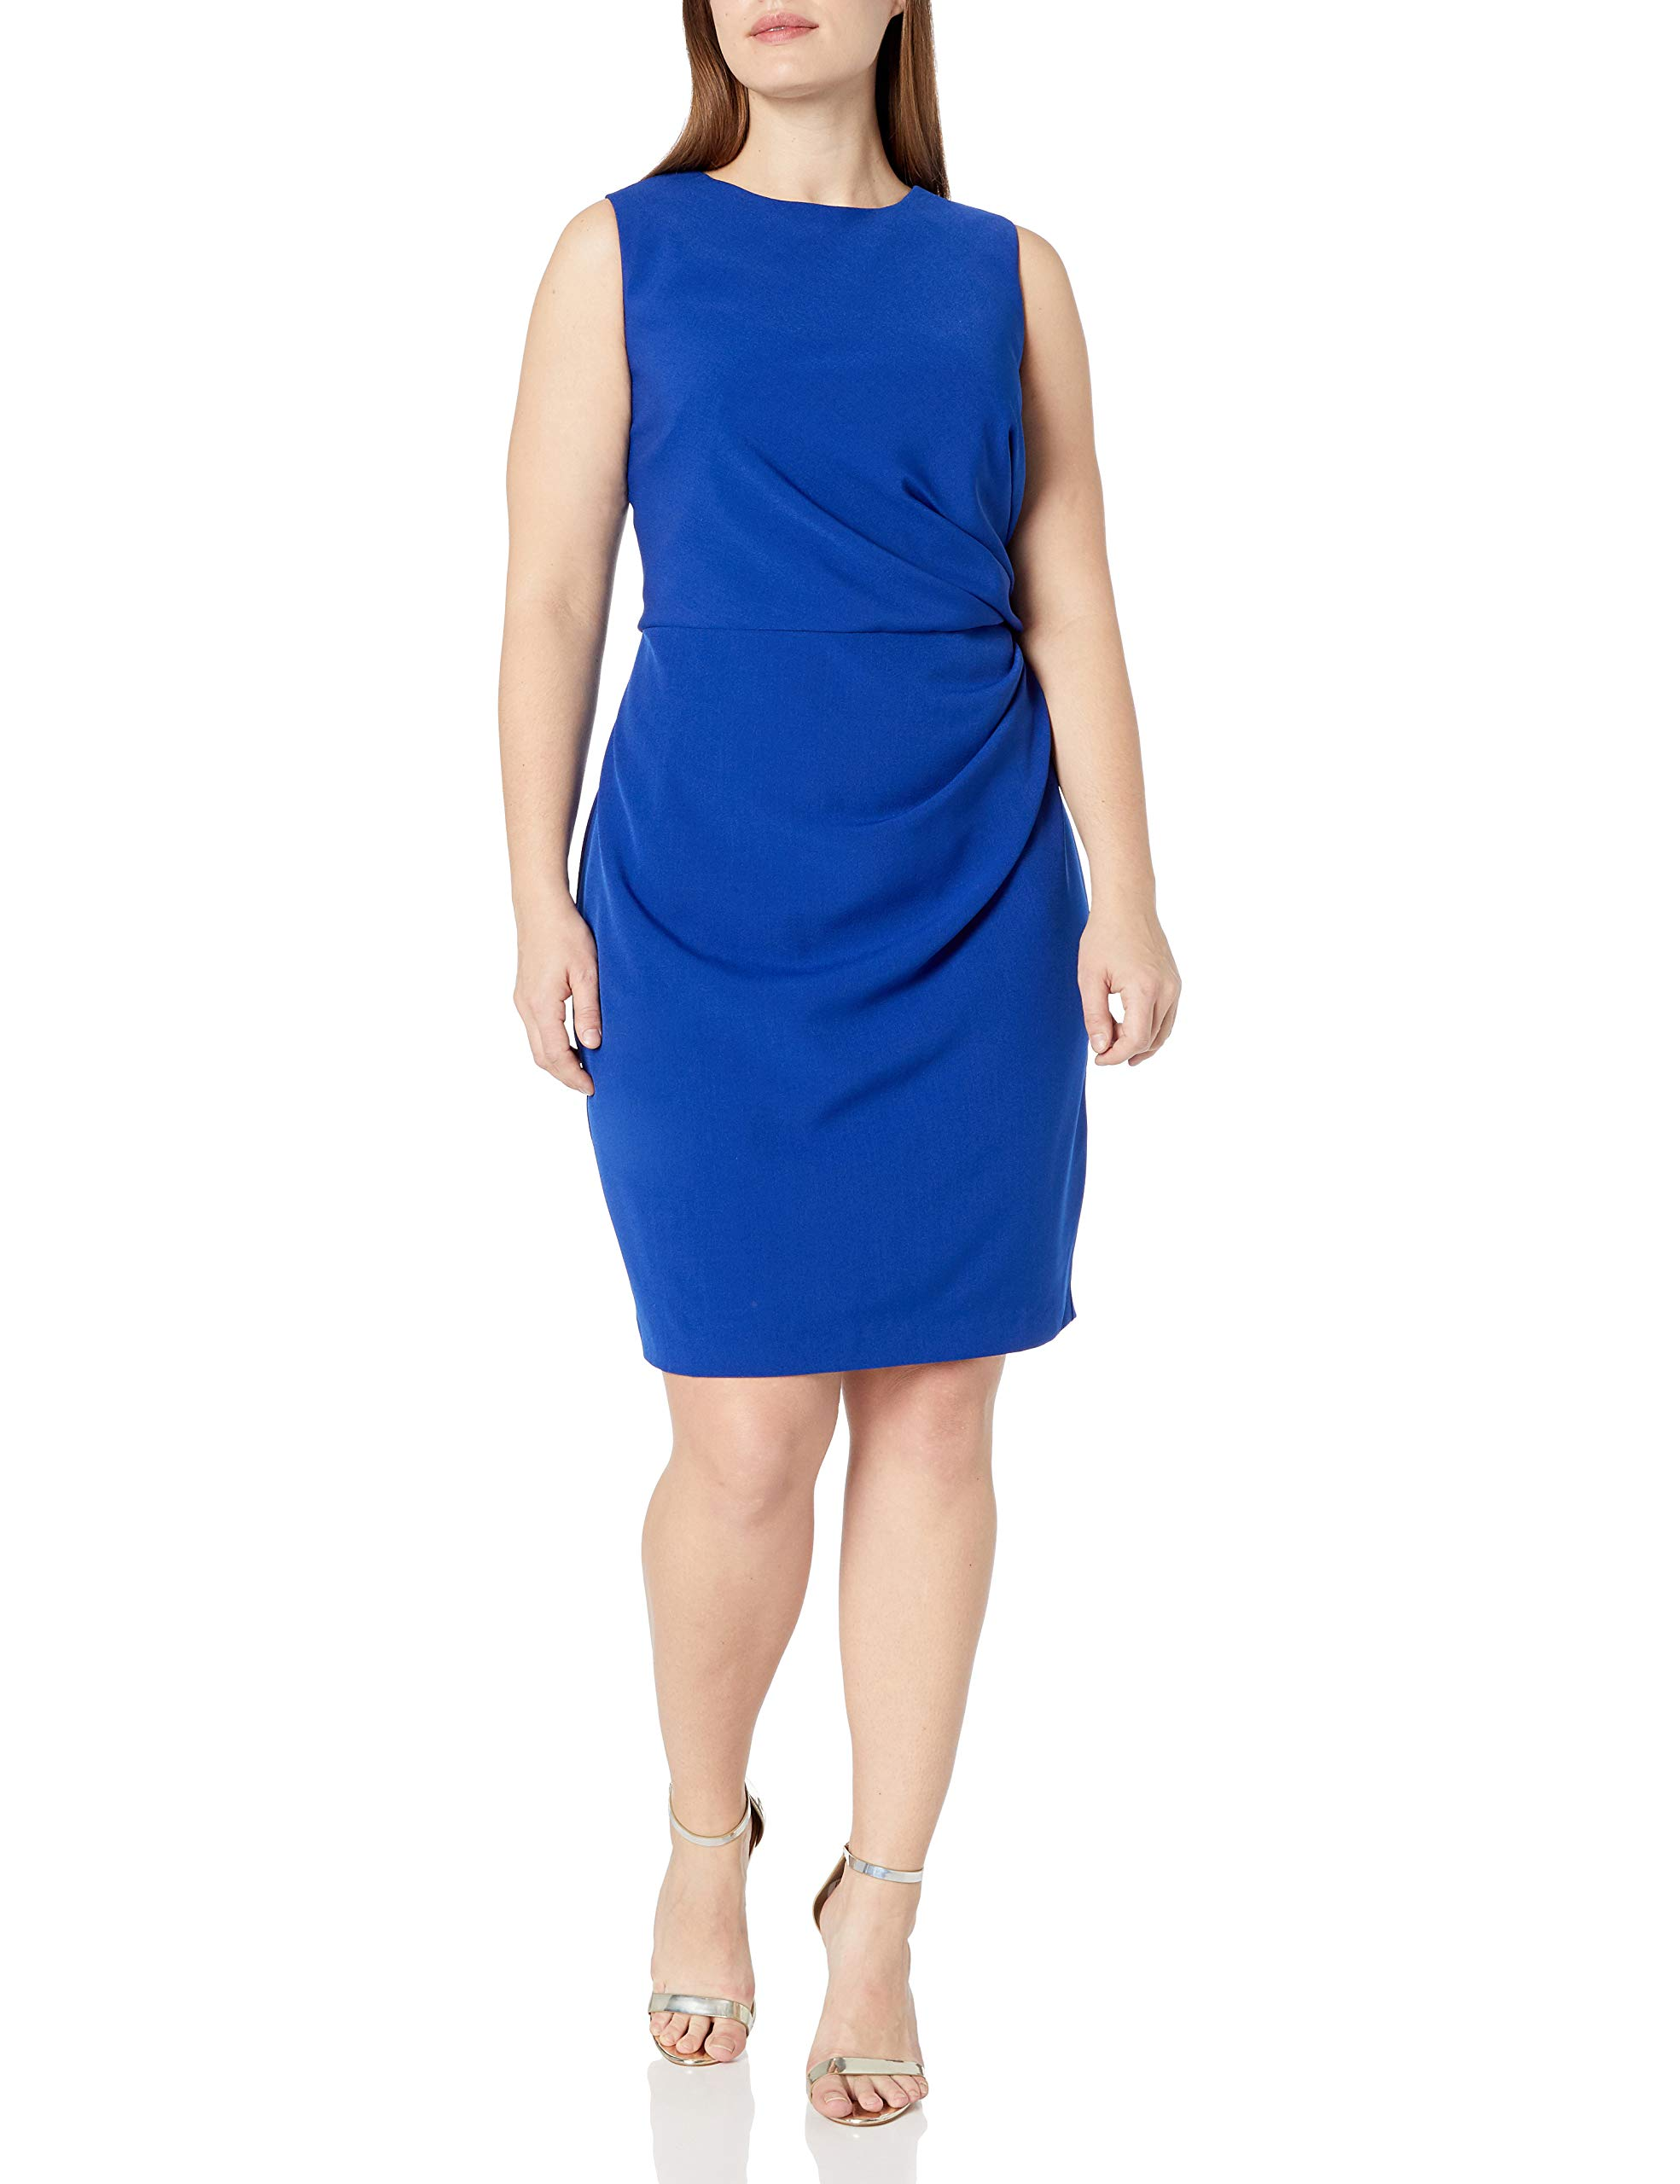 Available at Amazon: Adrianna Papell Women's Plus Size Womans Tucked Detail Stretch Crepe Sheath